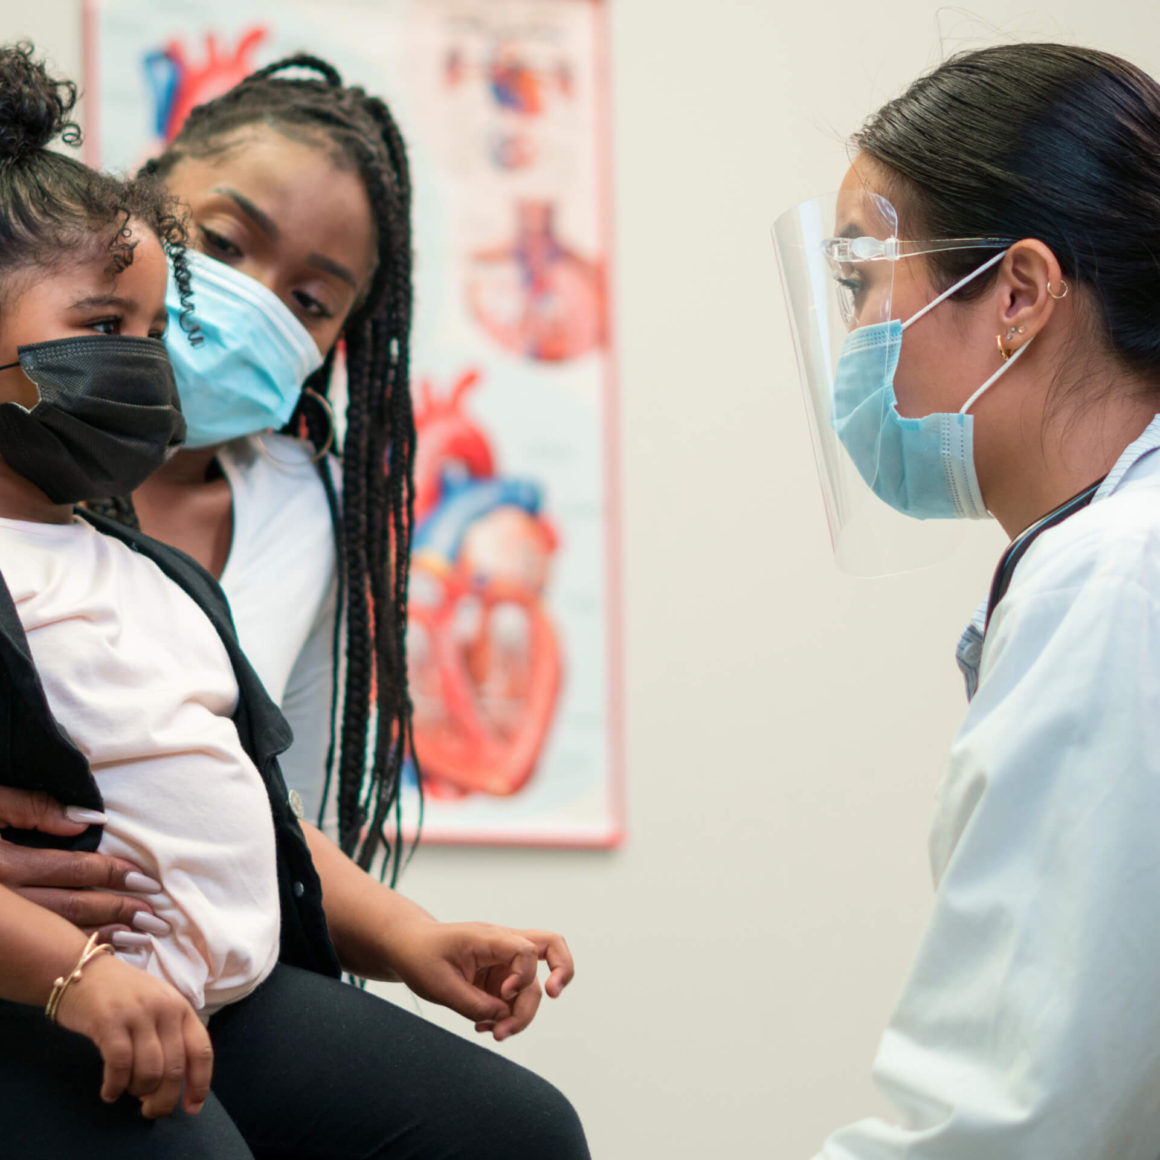 A woman and her daughter, wearing face-masks, talking to a doctor who is also wearing a face-mask.